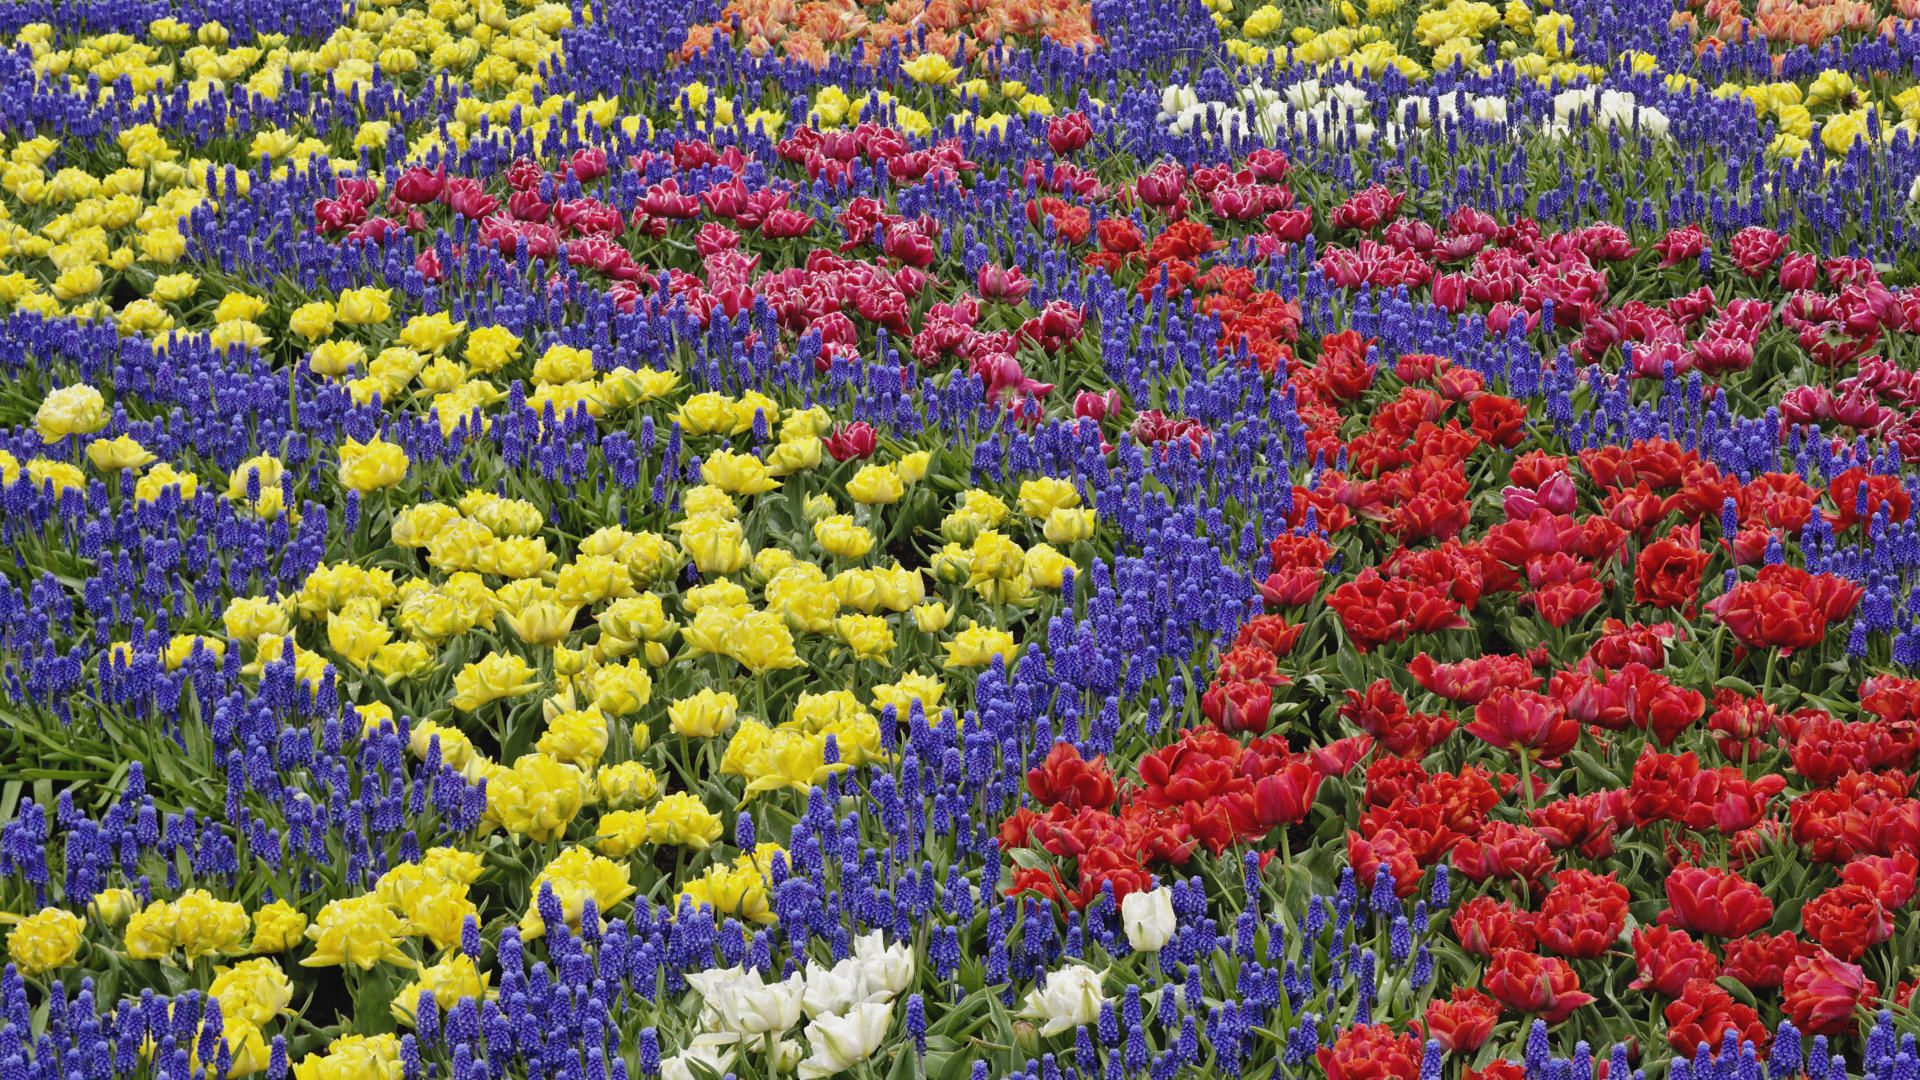 Most Beautiful Flower Garden In The World Dubai You Can Get More